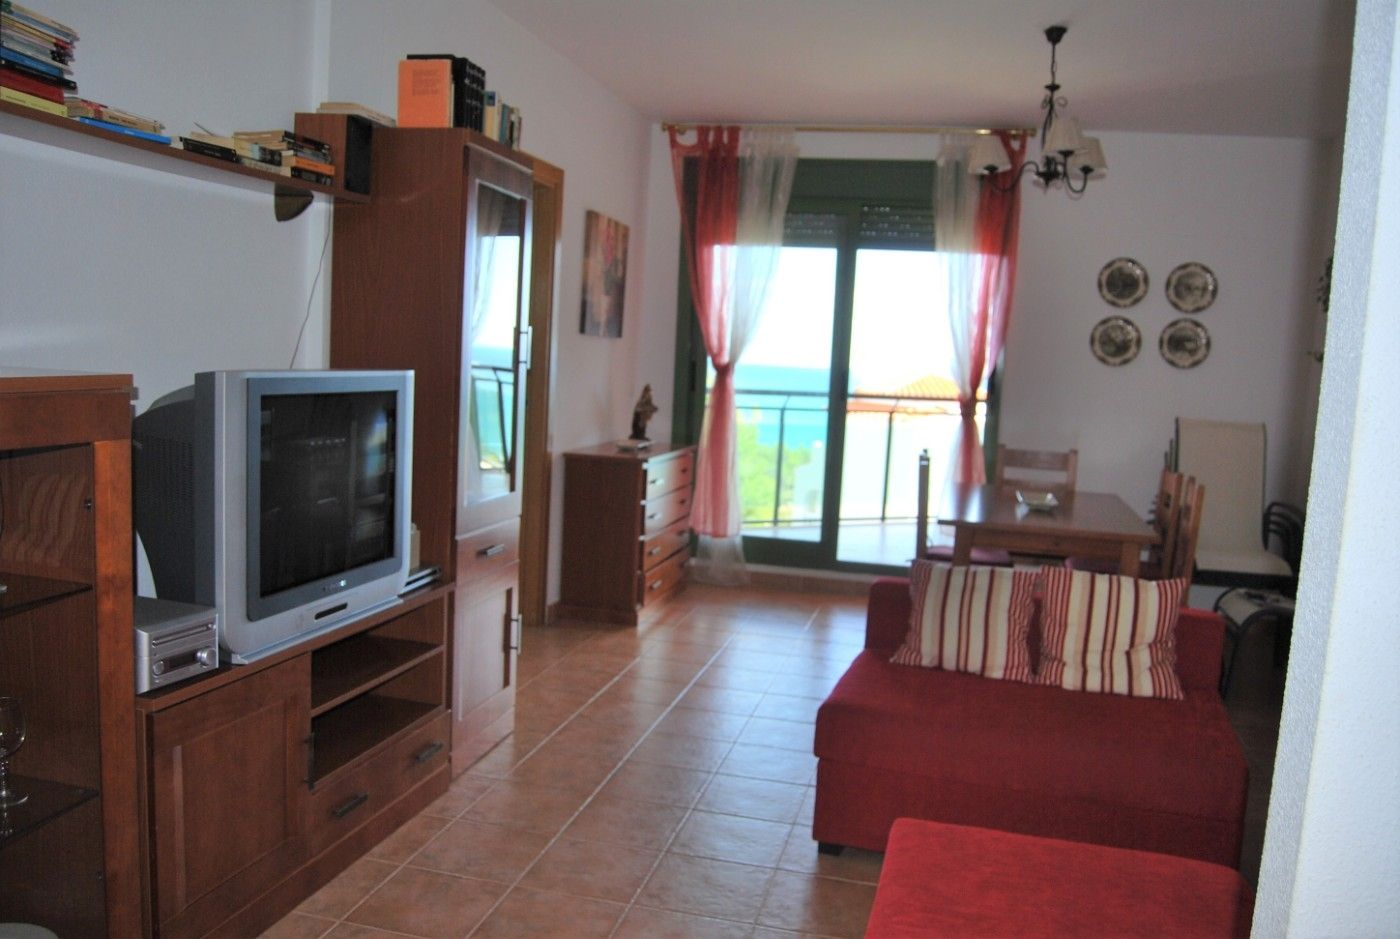 Appartement in Regne unit, 142. Muy tranquilo y natural